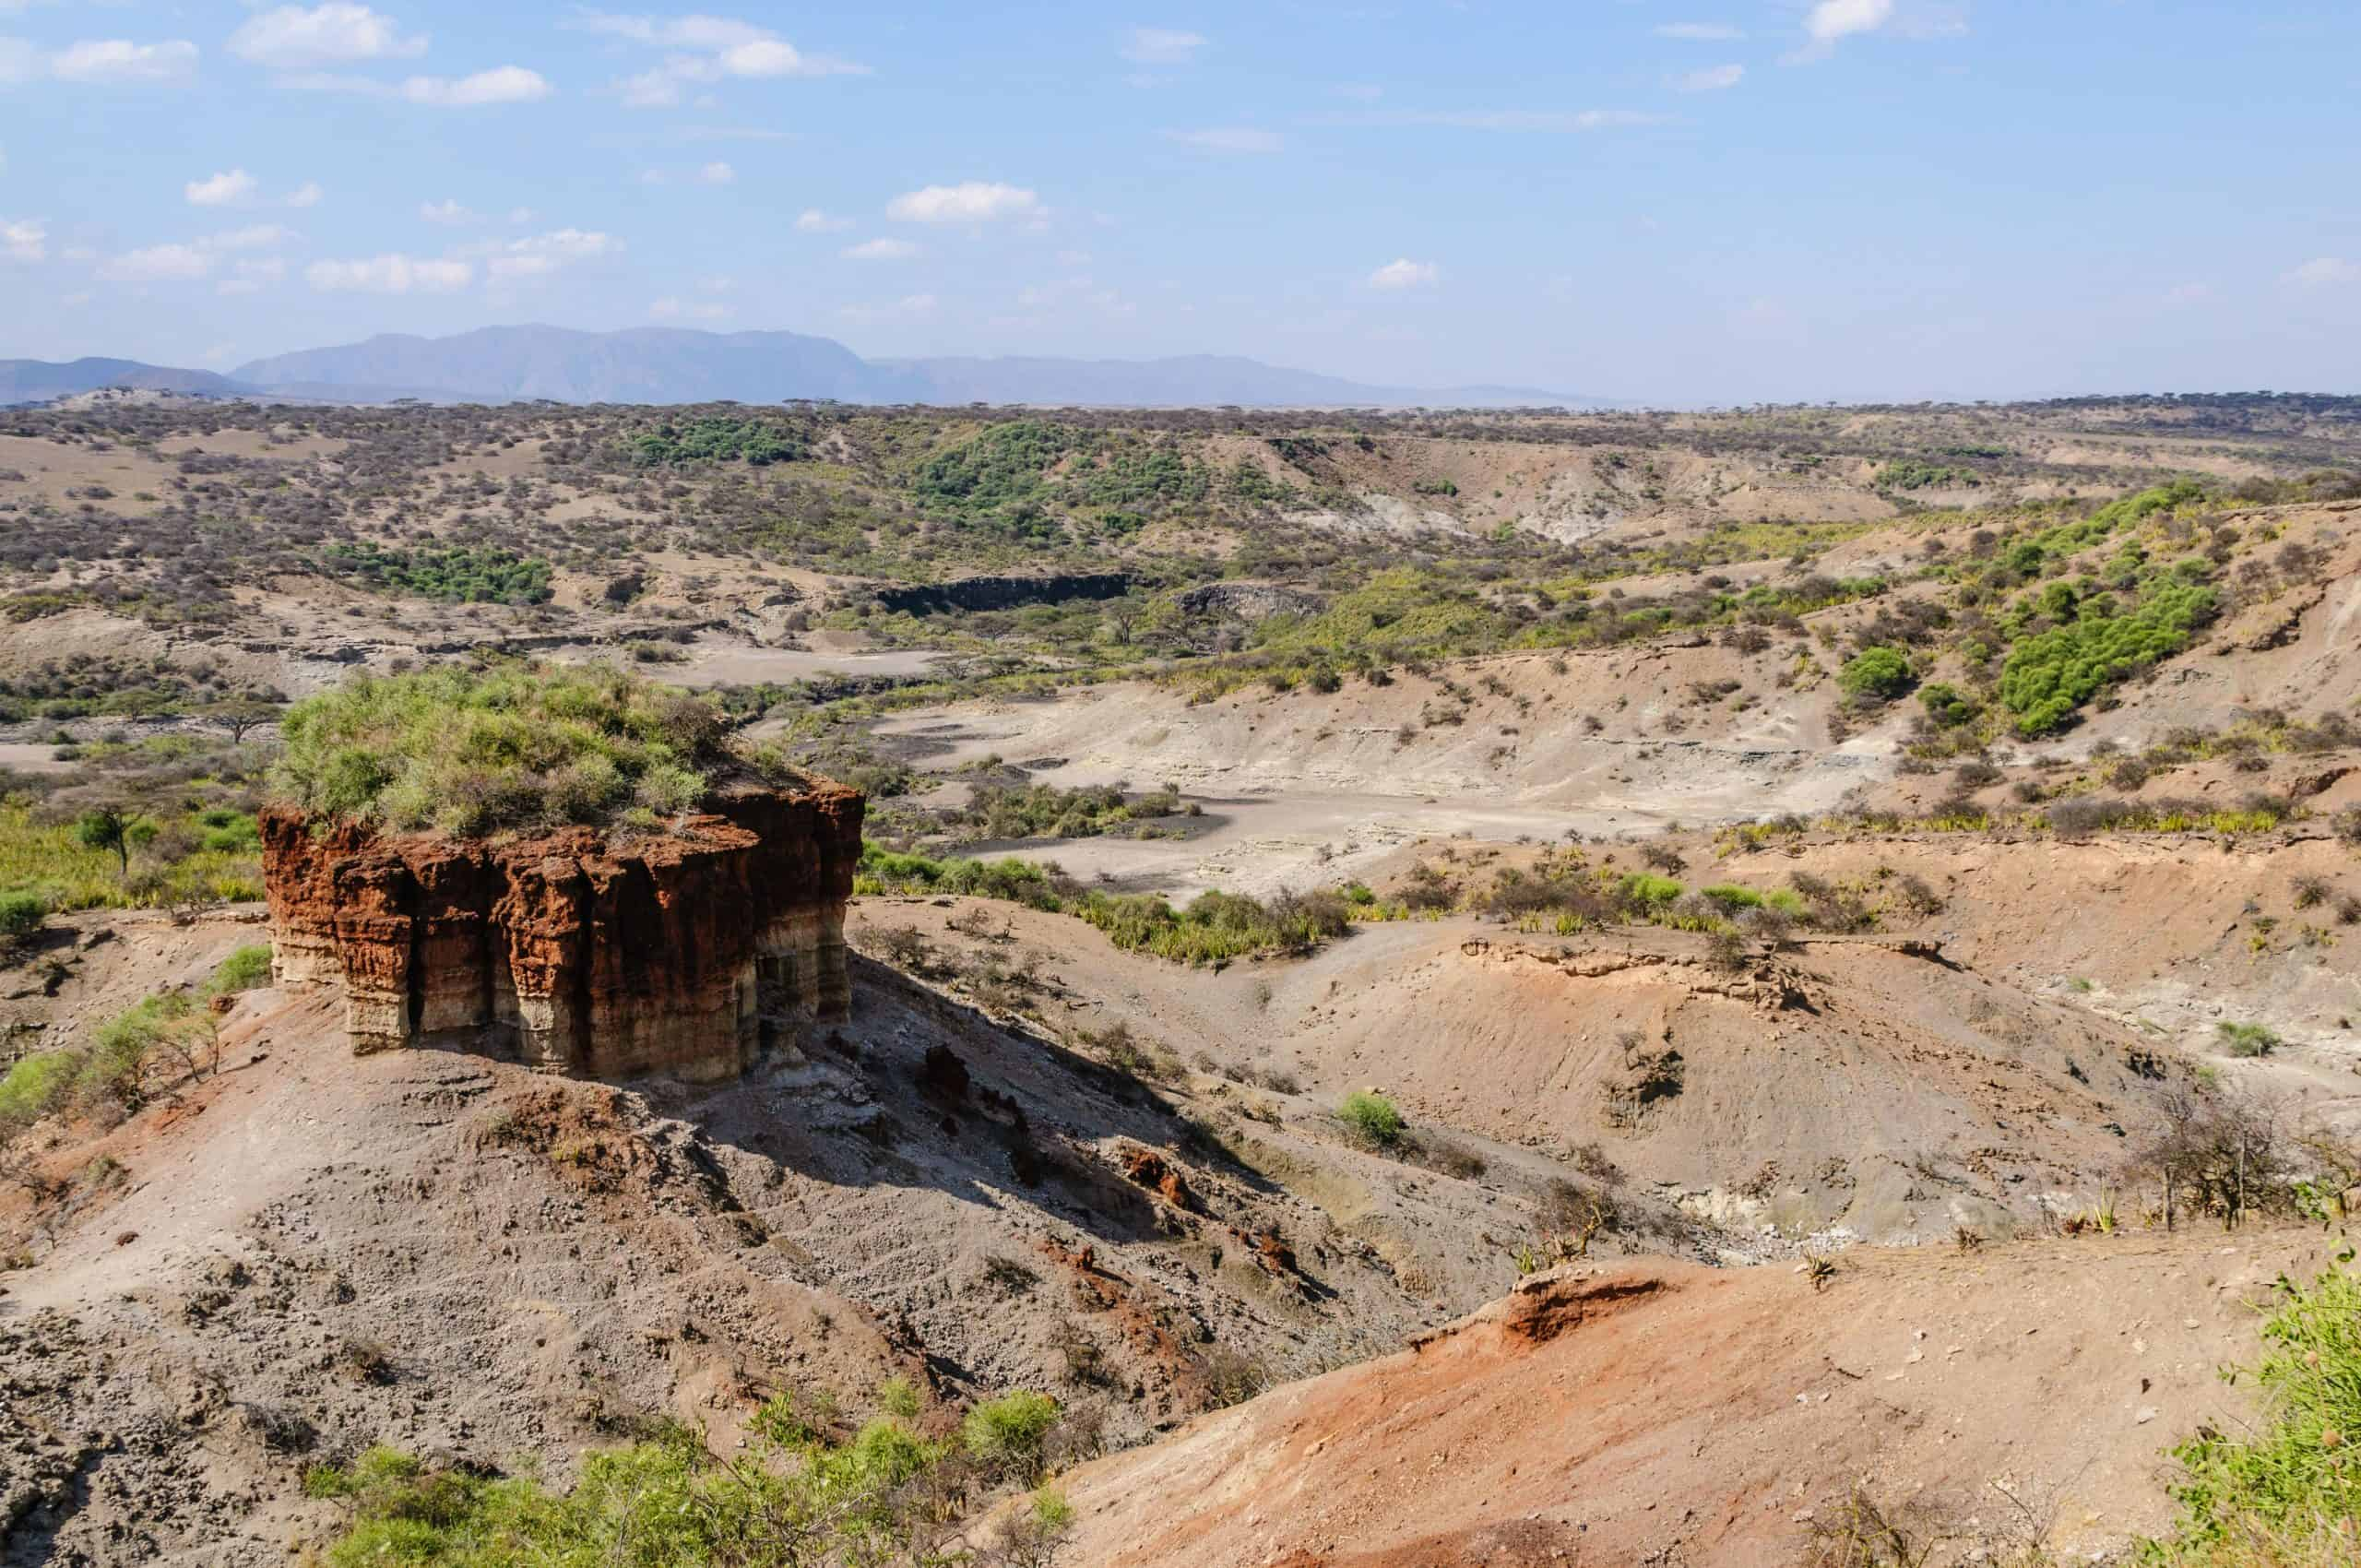 Olduvai Gorge, Where Many Early Human Fossils Were Found